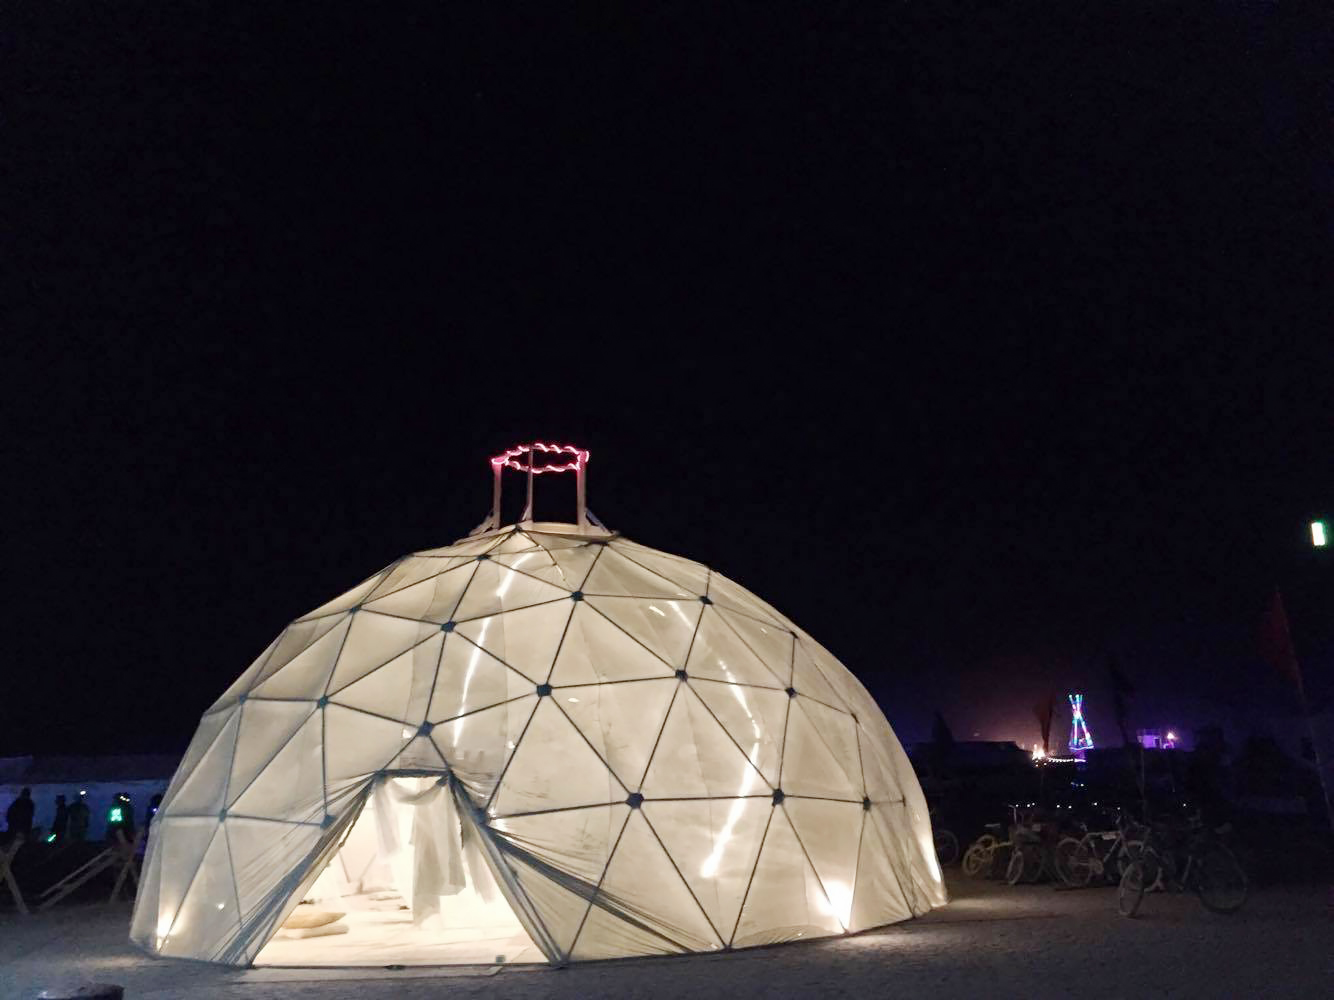 Milk and Honey's geodesic dome at night.